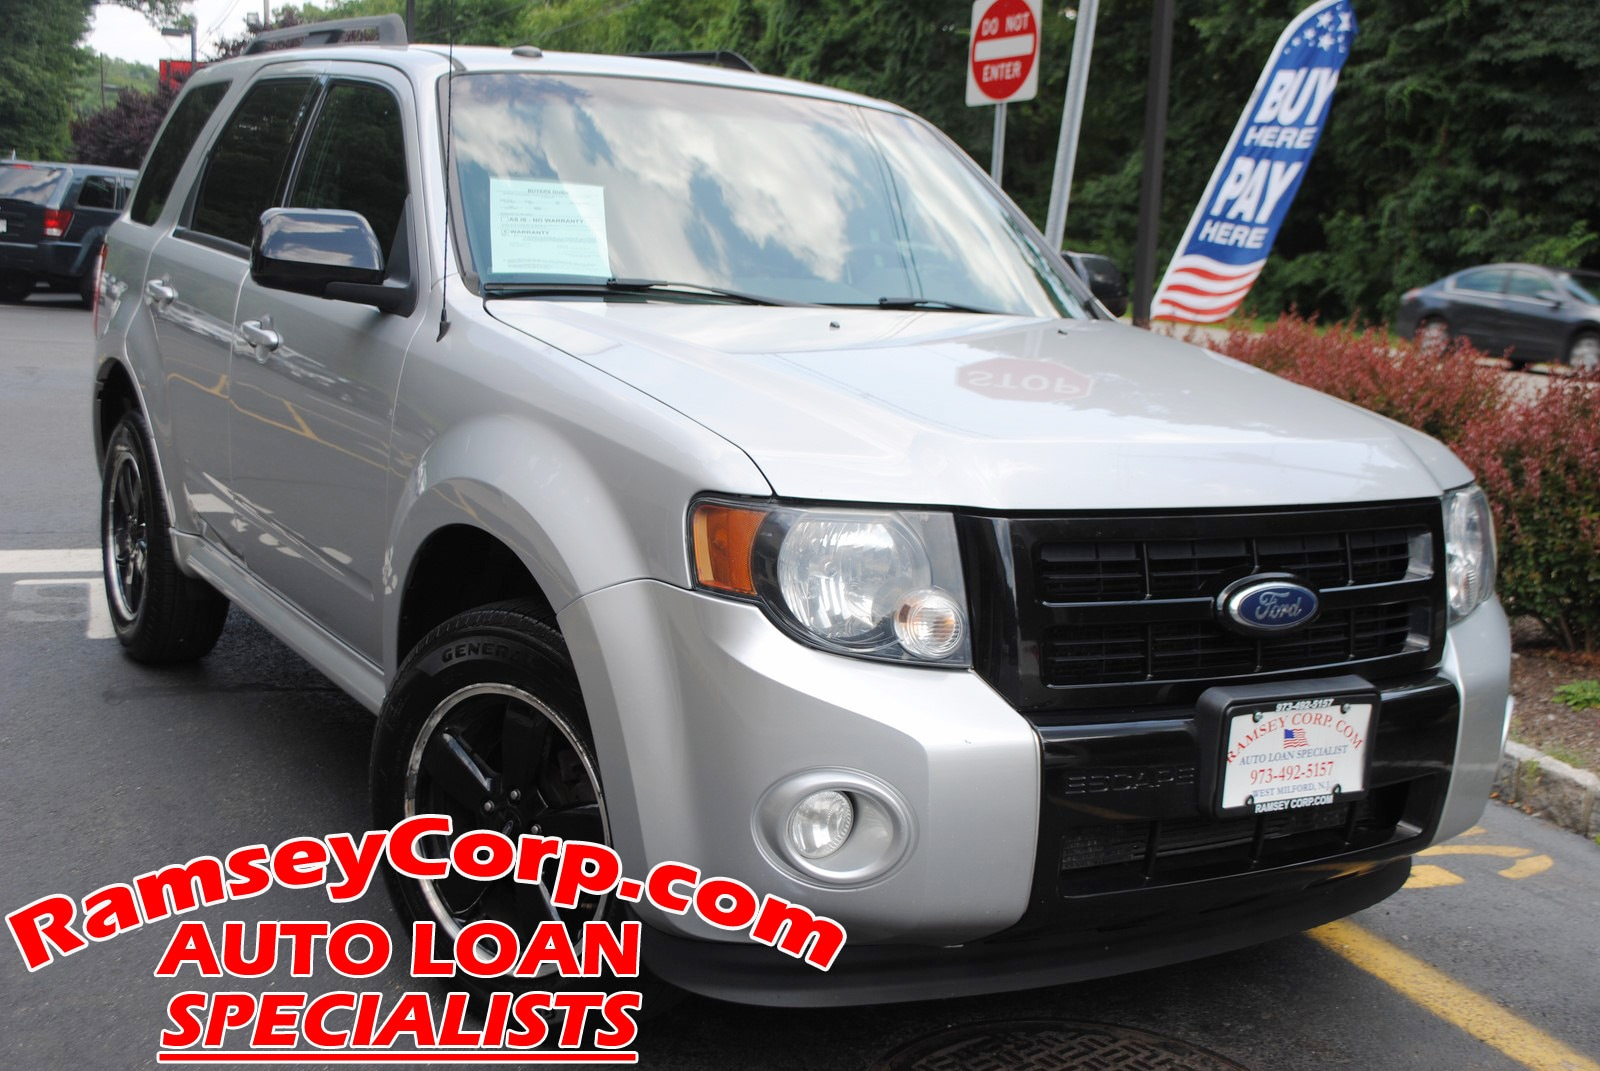 Used 2010 Ford Escape For Sale At Ramsey Corp Vin 1fmcu9dg0akc63135 2008 Expedition Tow Package Wiring Schematic